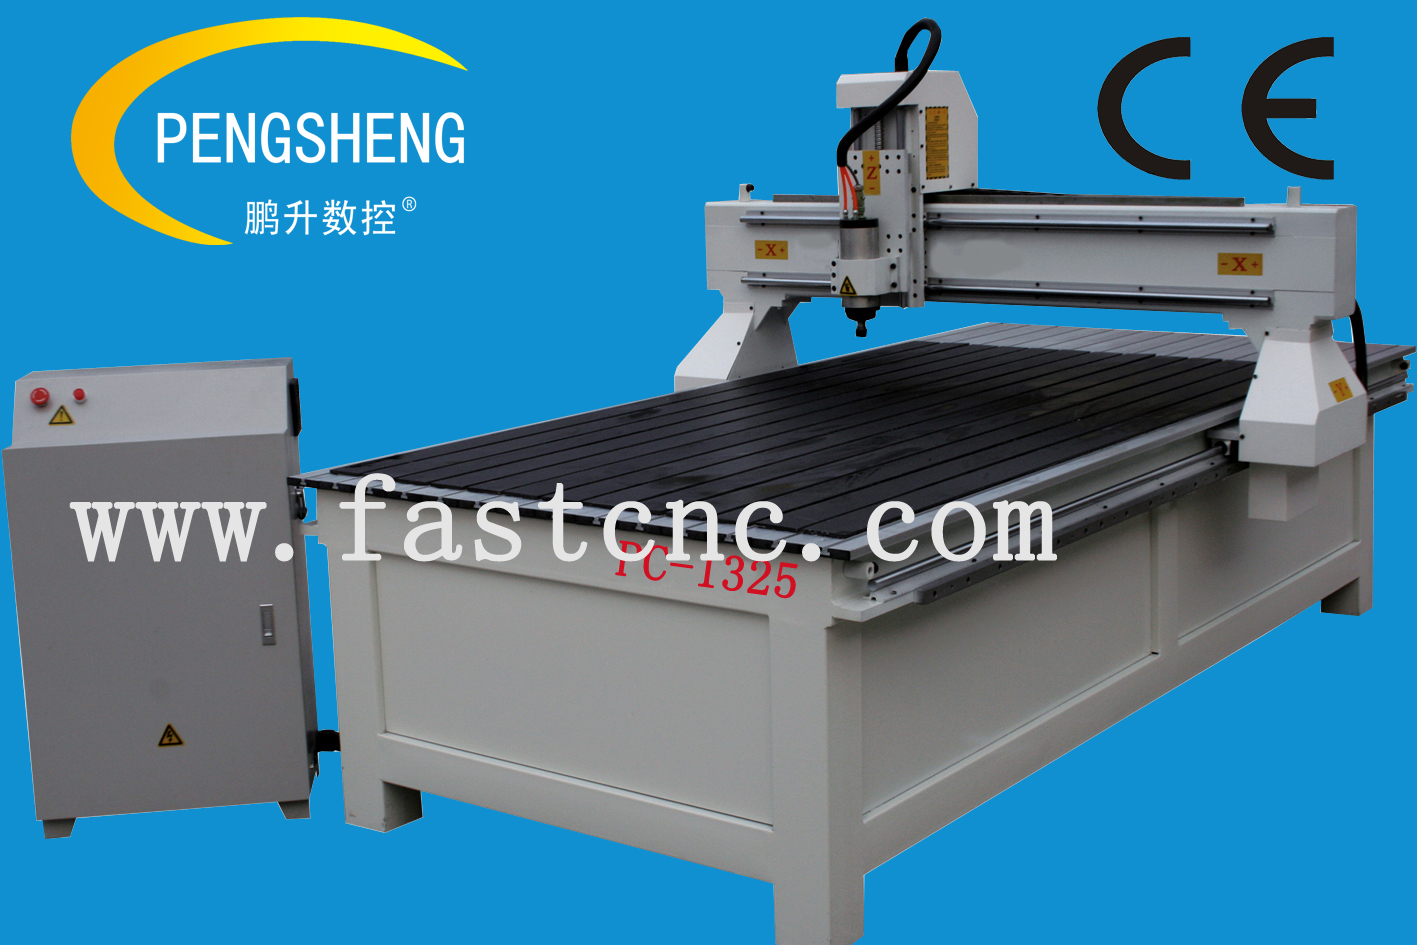 Hot sale!!!! advertising cnc router PC-1325 C type